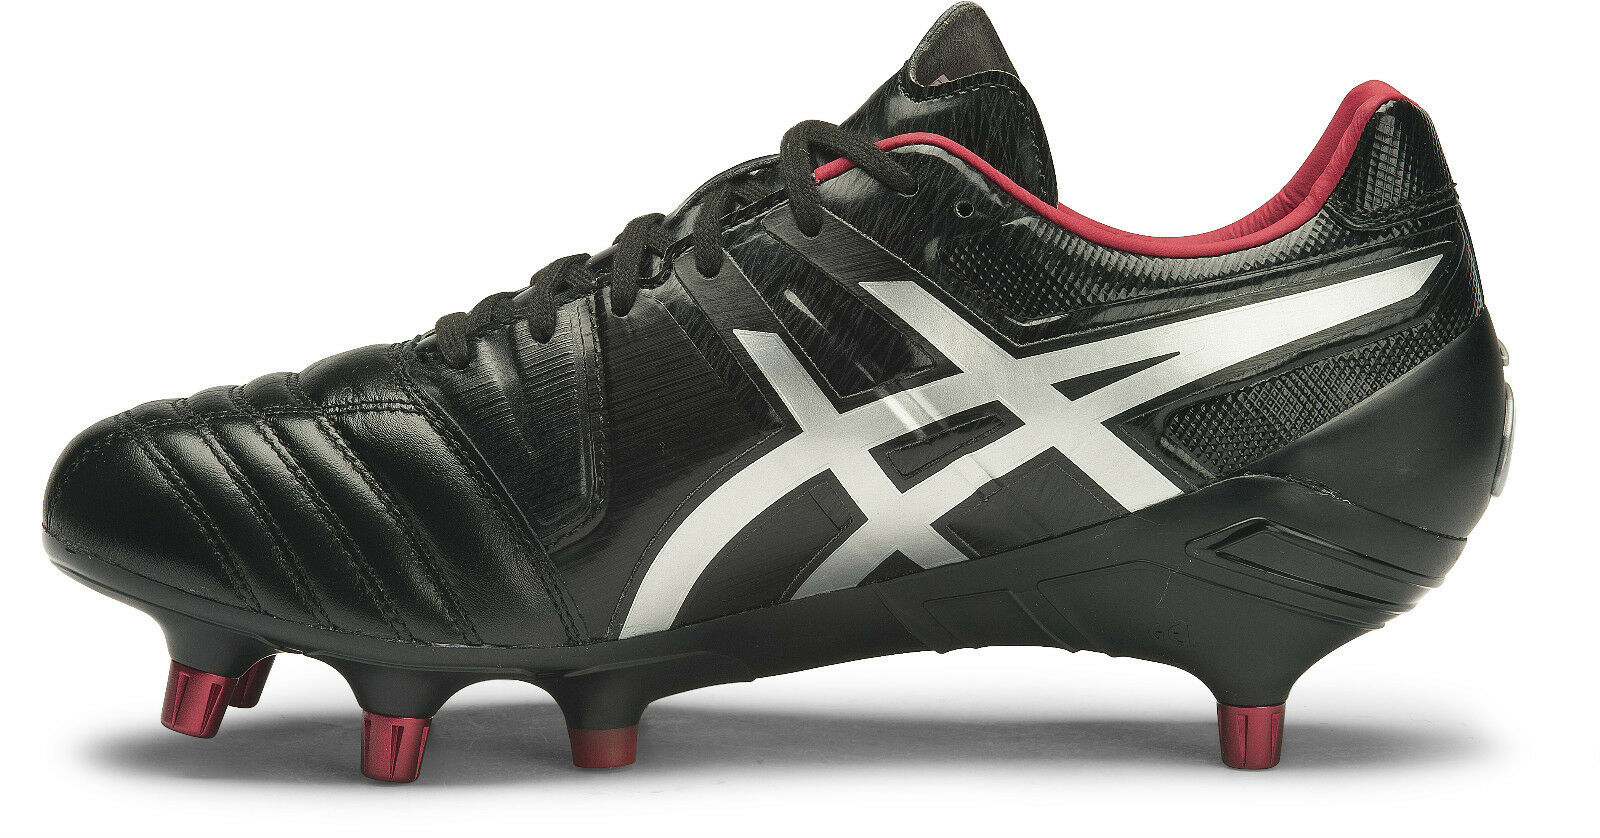 Asics Gel Lethal Lethal Lethal Tight Five Mens Football schuhe (9093) + Free Aus Delivery 9d3f5f